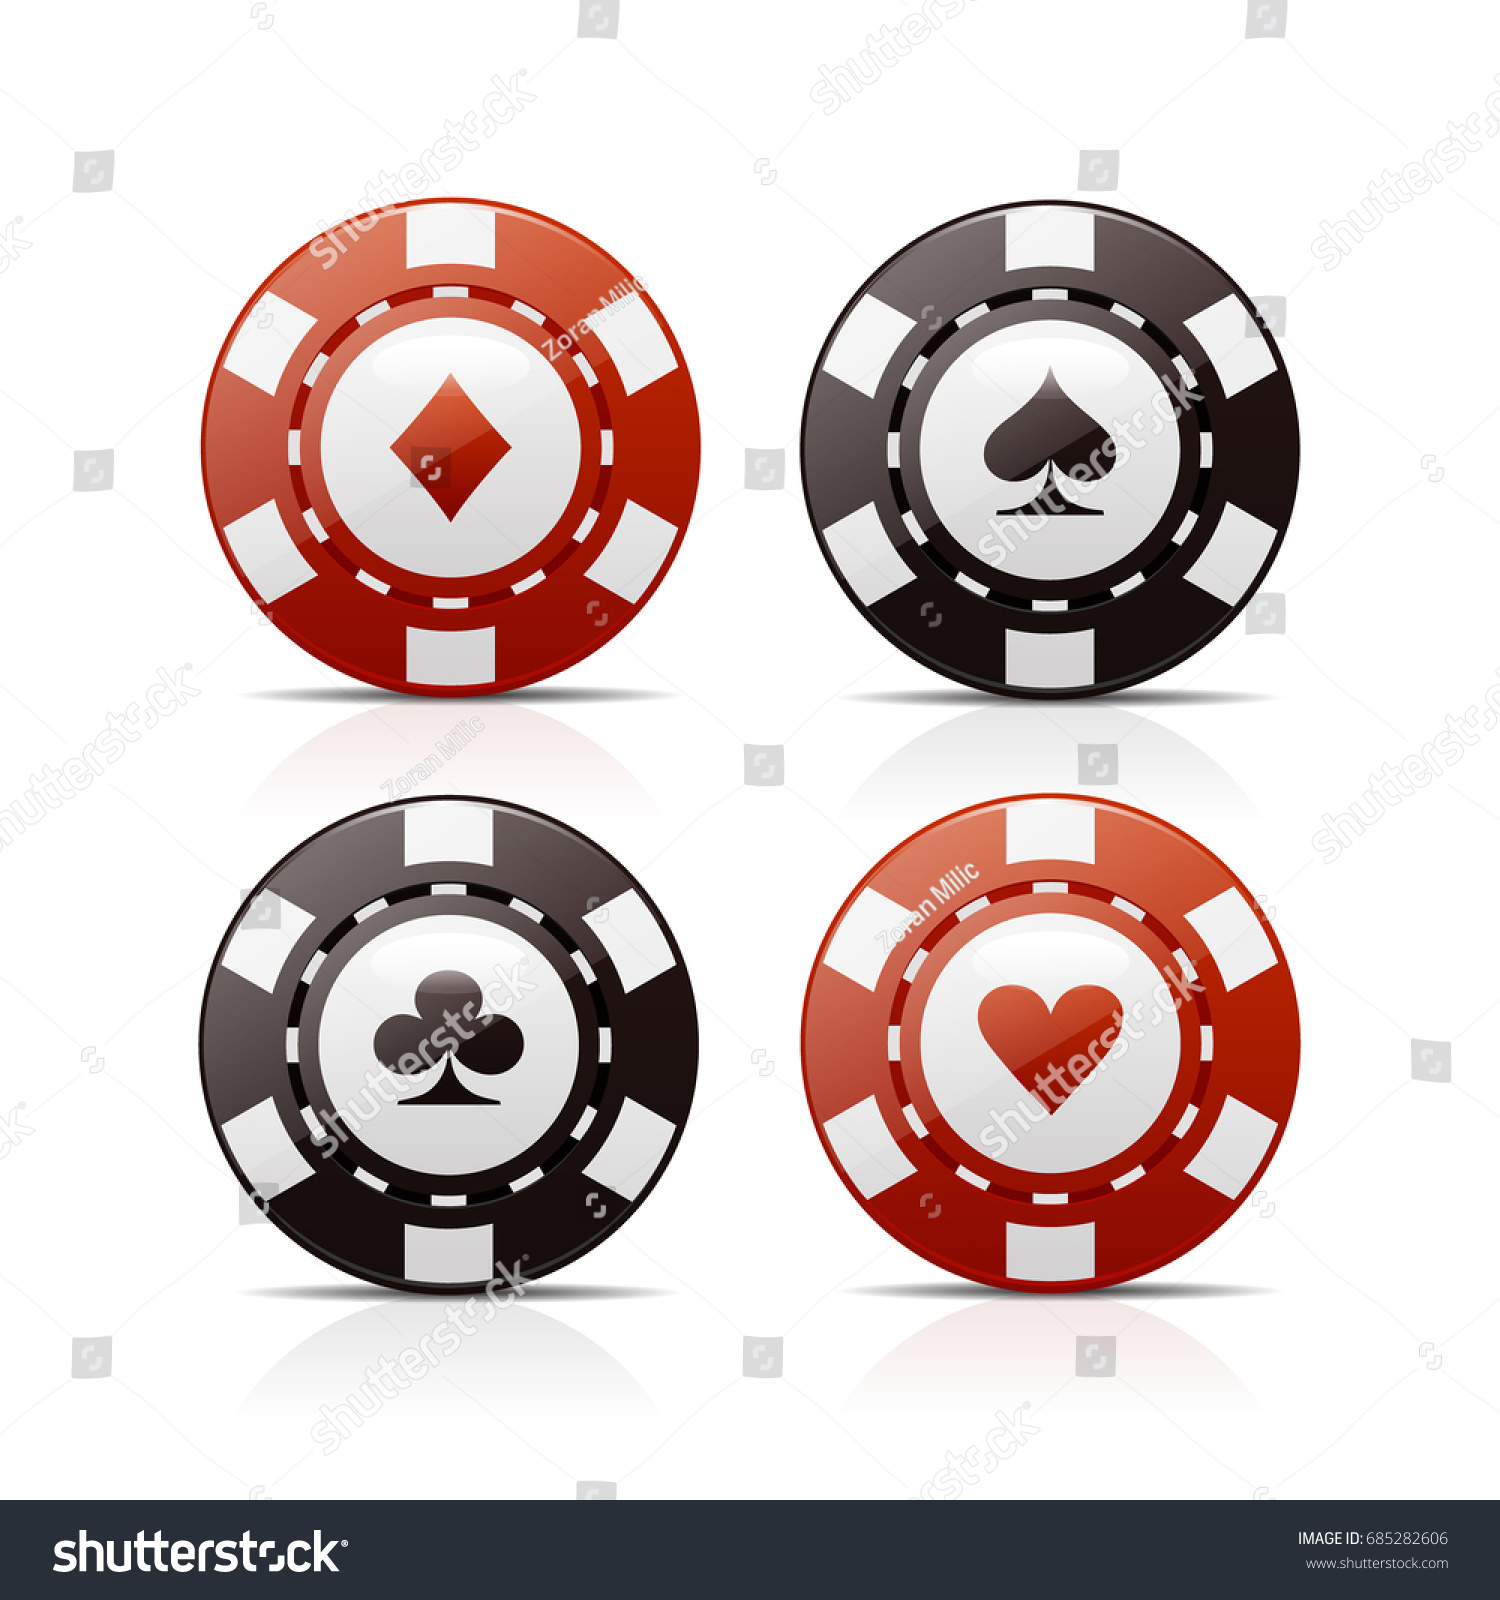 Four Poker Chips Card Suit Signs Stock Vector 685282606 - Shutterstock